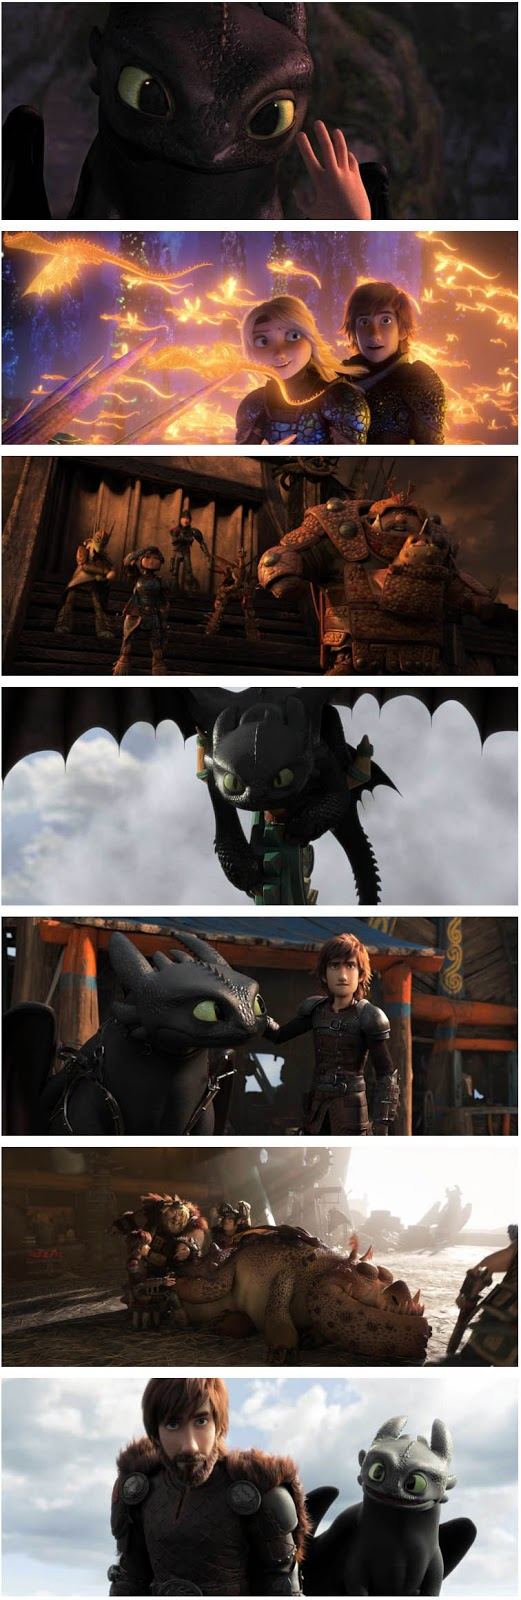 How to train your dragon 3 full movie in hindi watch online